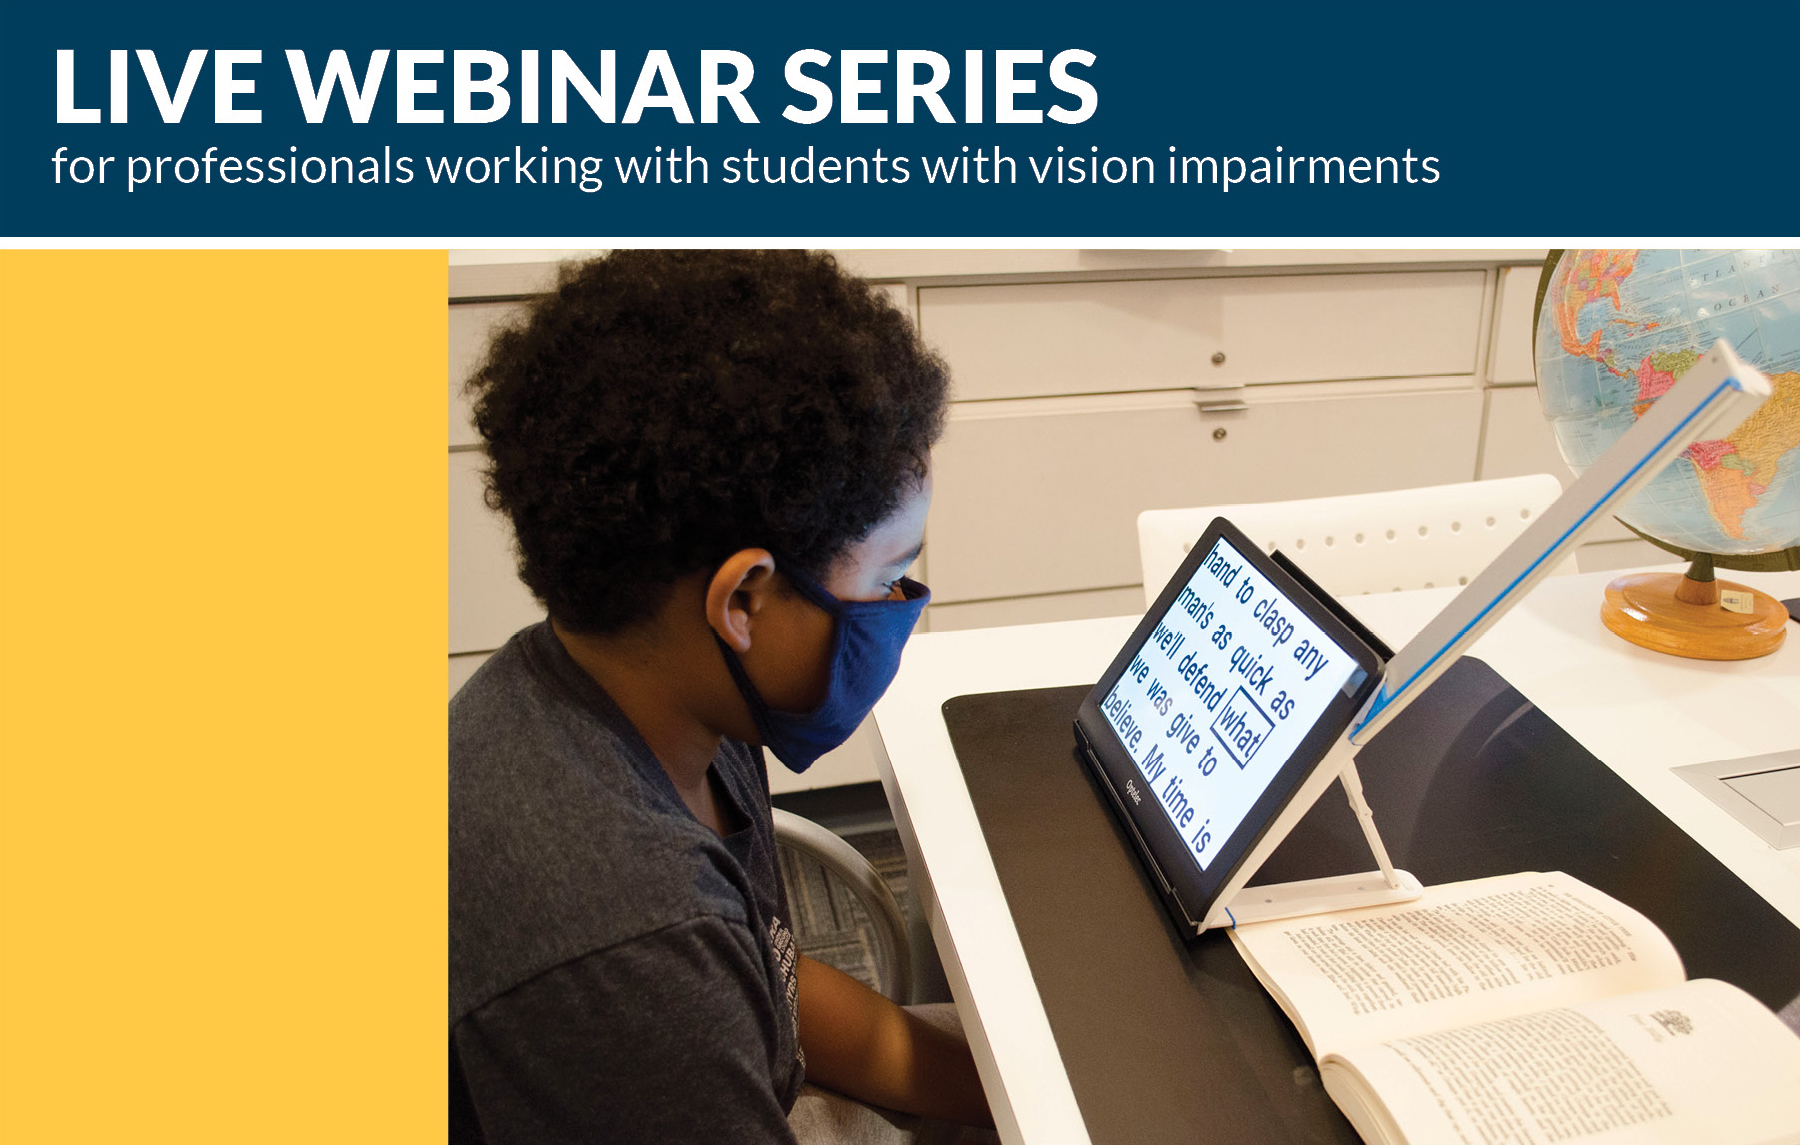 Live Webinar Series for Professionals working with students with vision impairments